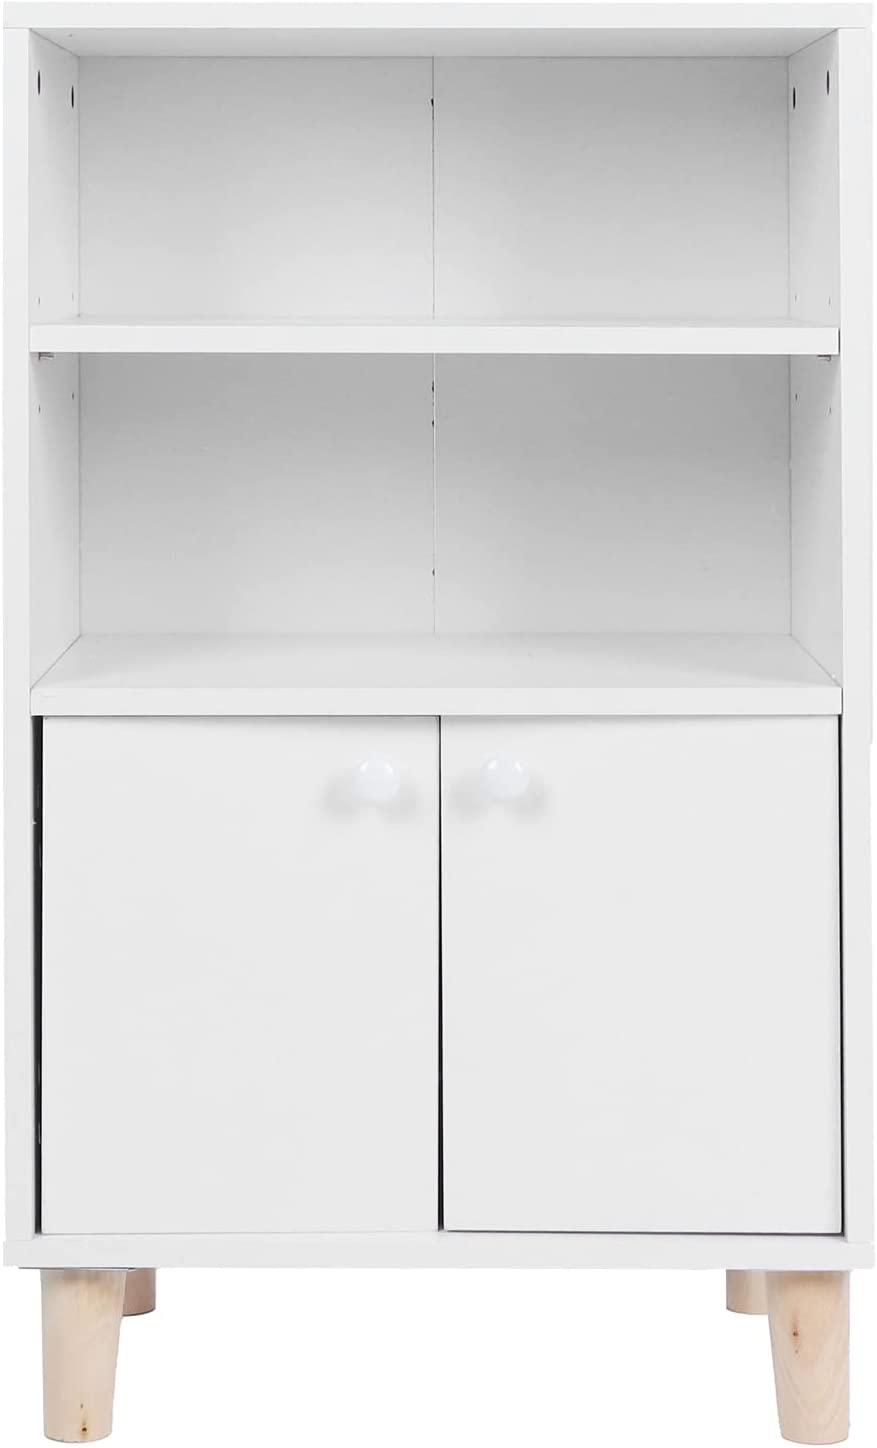 GOTOTOP CabinetBathroom Long-awaited Cabinet 48x30x80cm Challenge the lowest price Freestanding